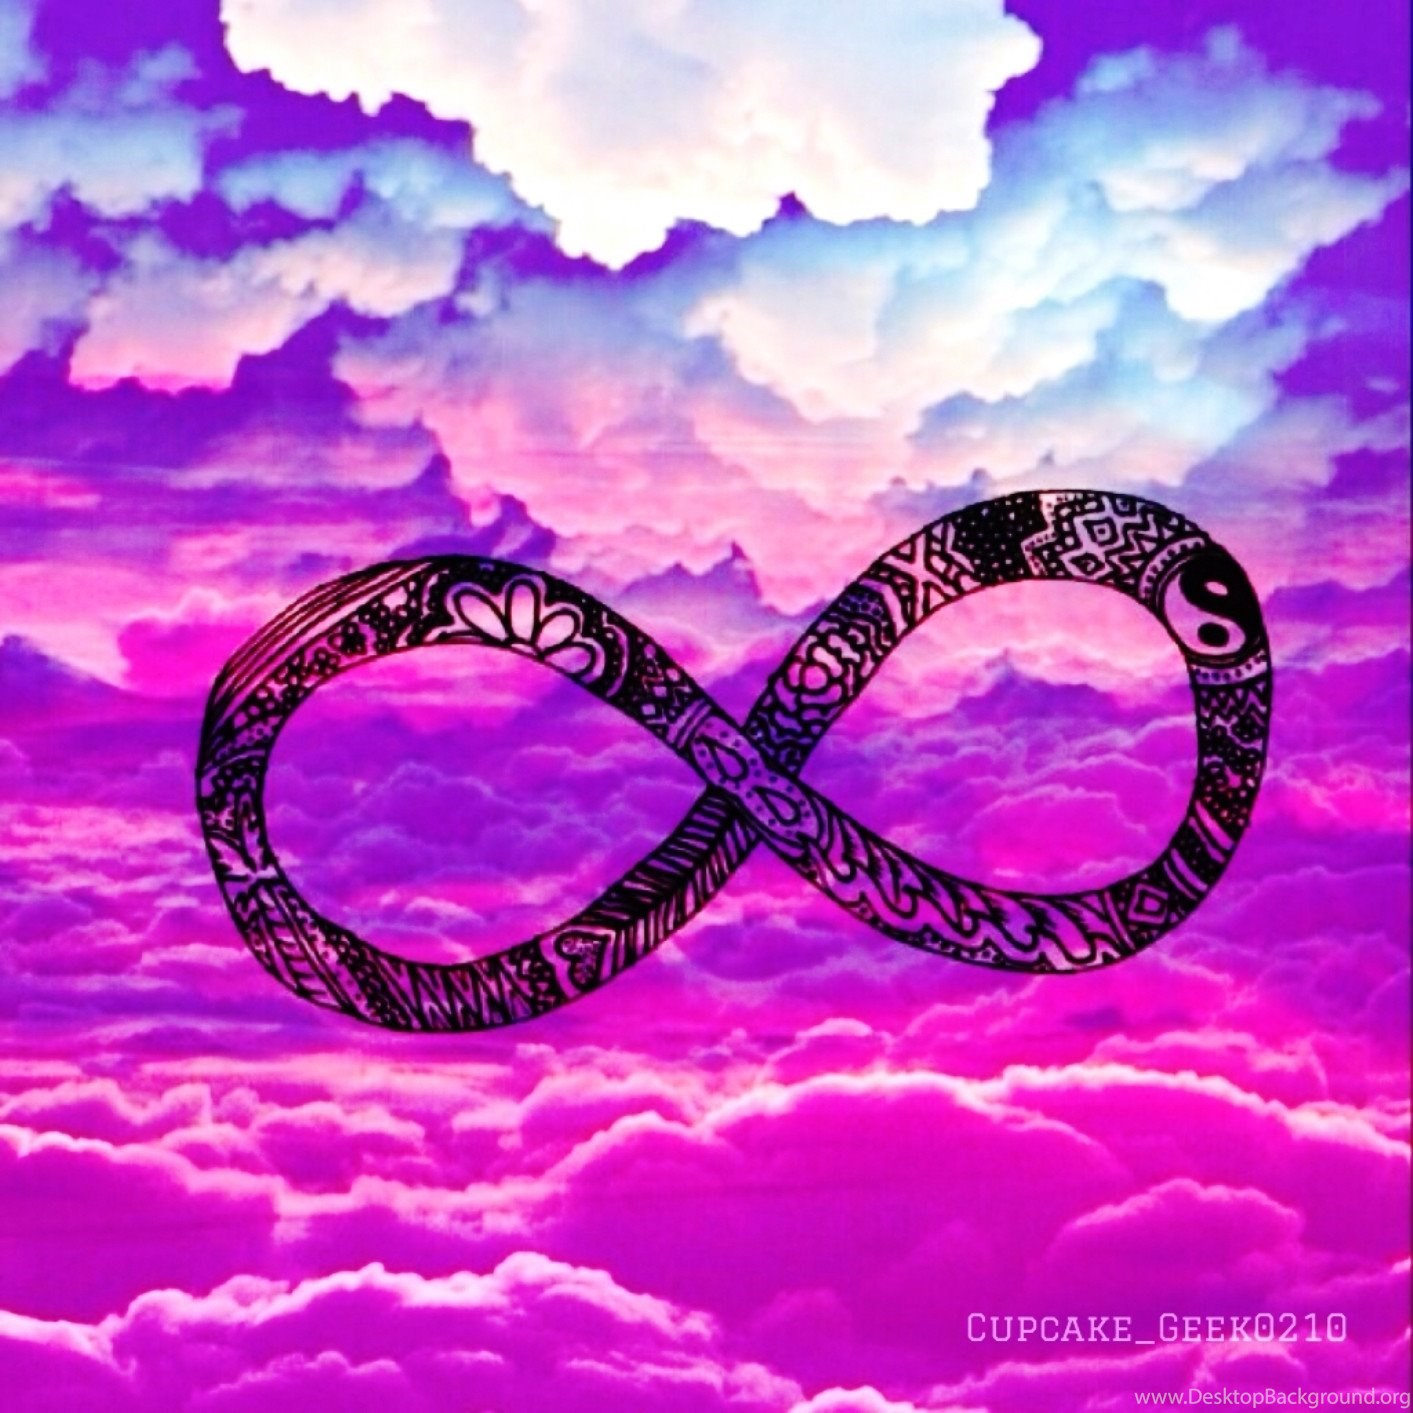 Cute Infinity Wallpapers Tumblr Iphone Best